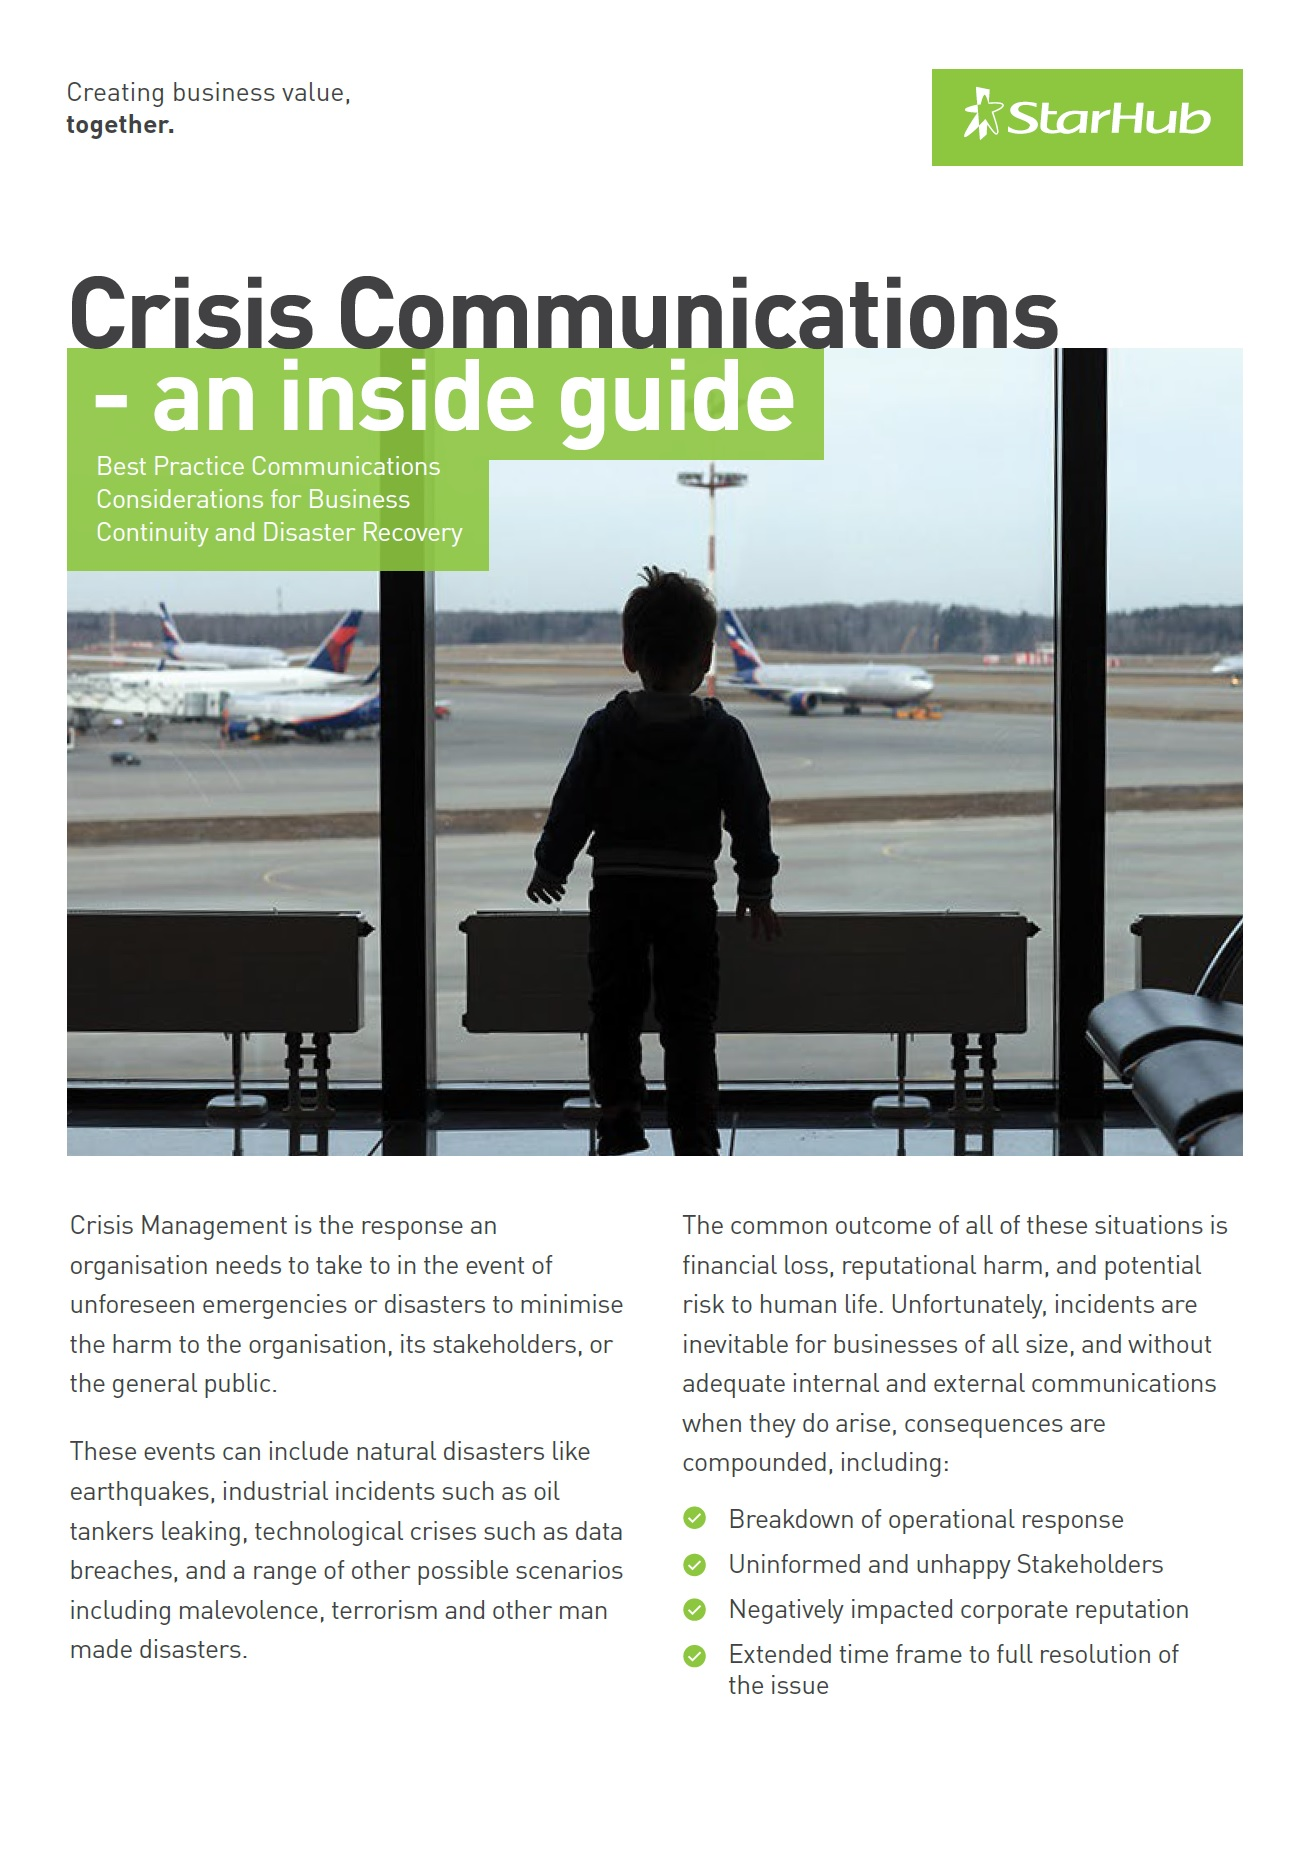 Crisis Communications - an inside guide